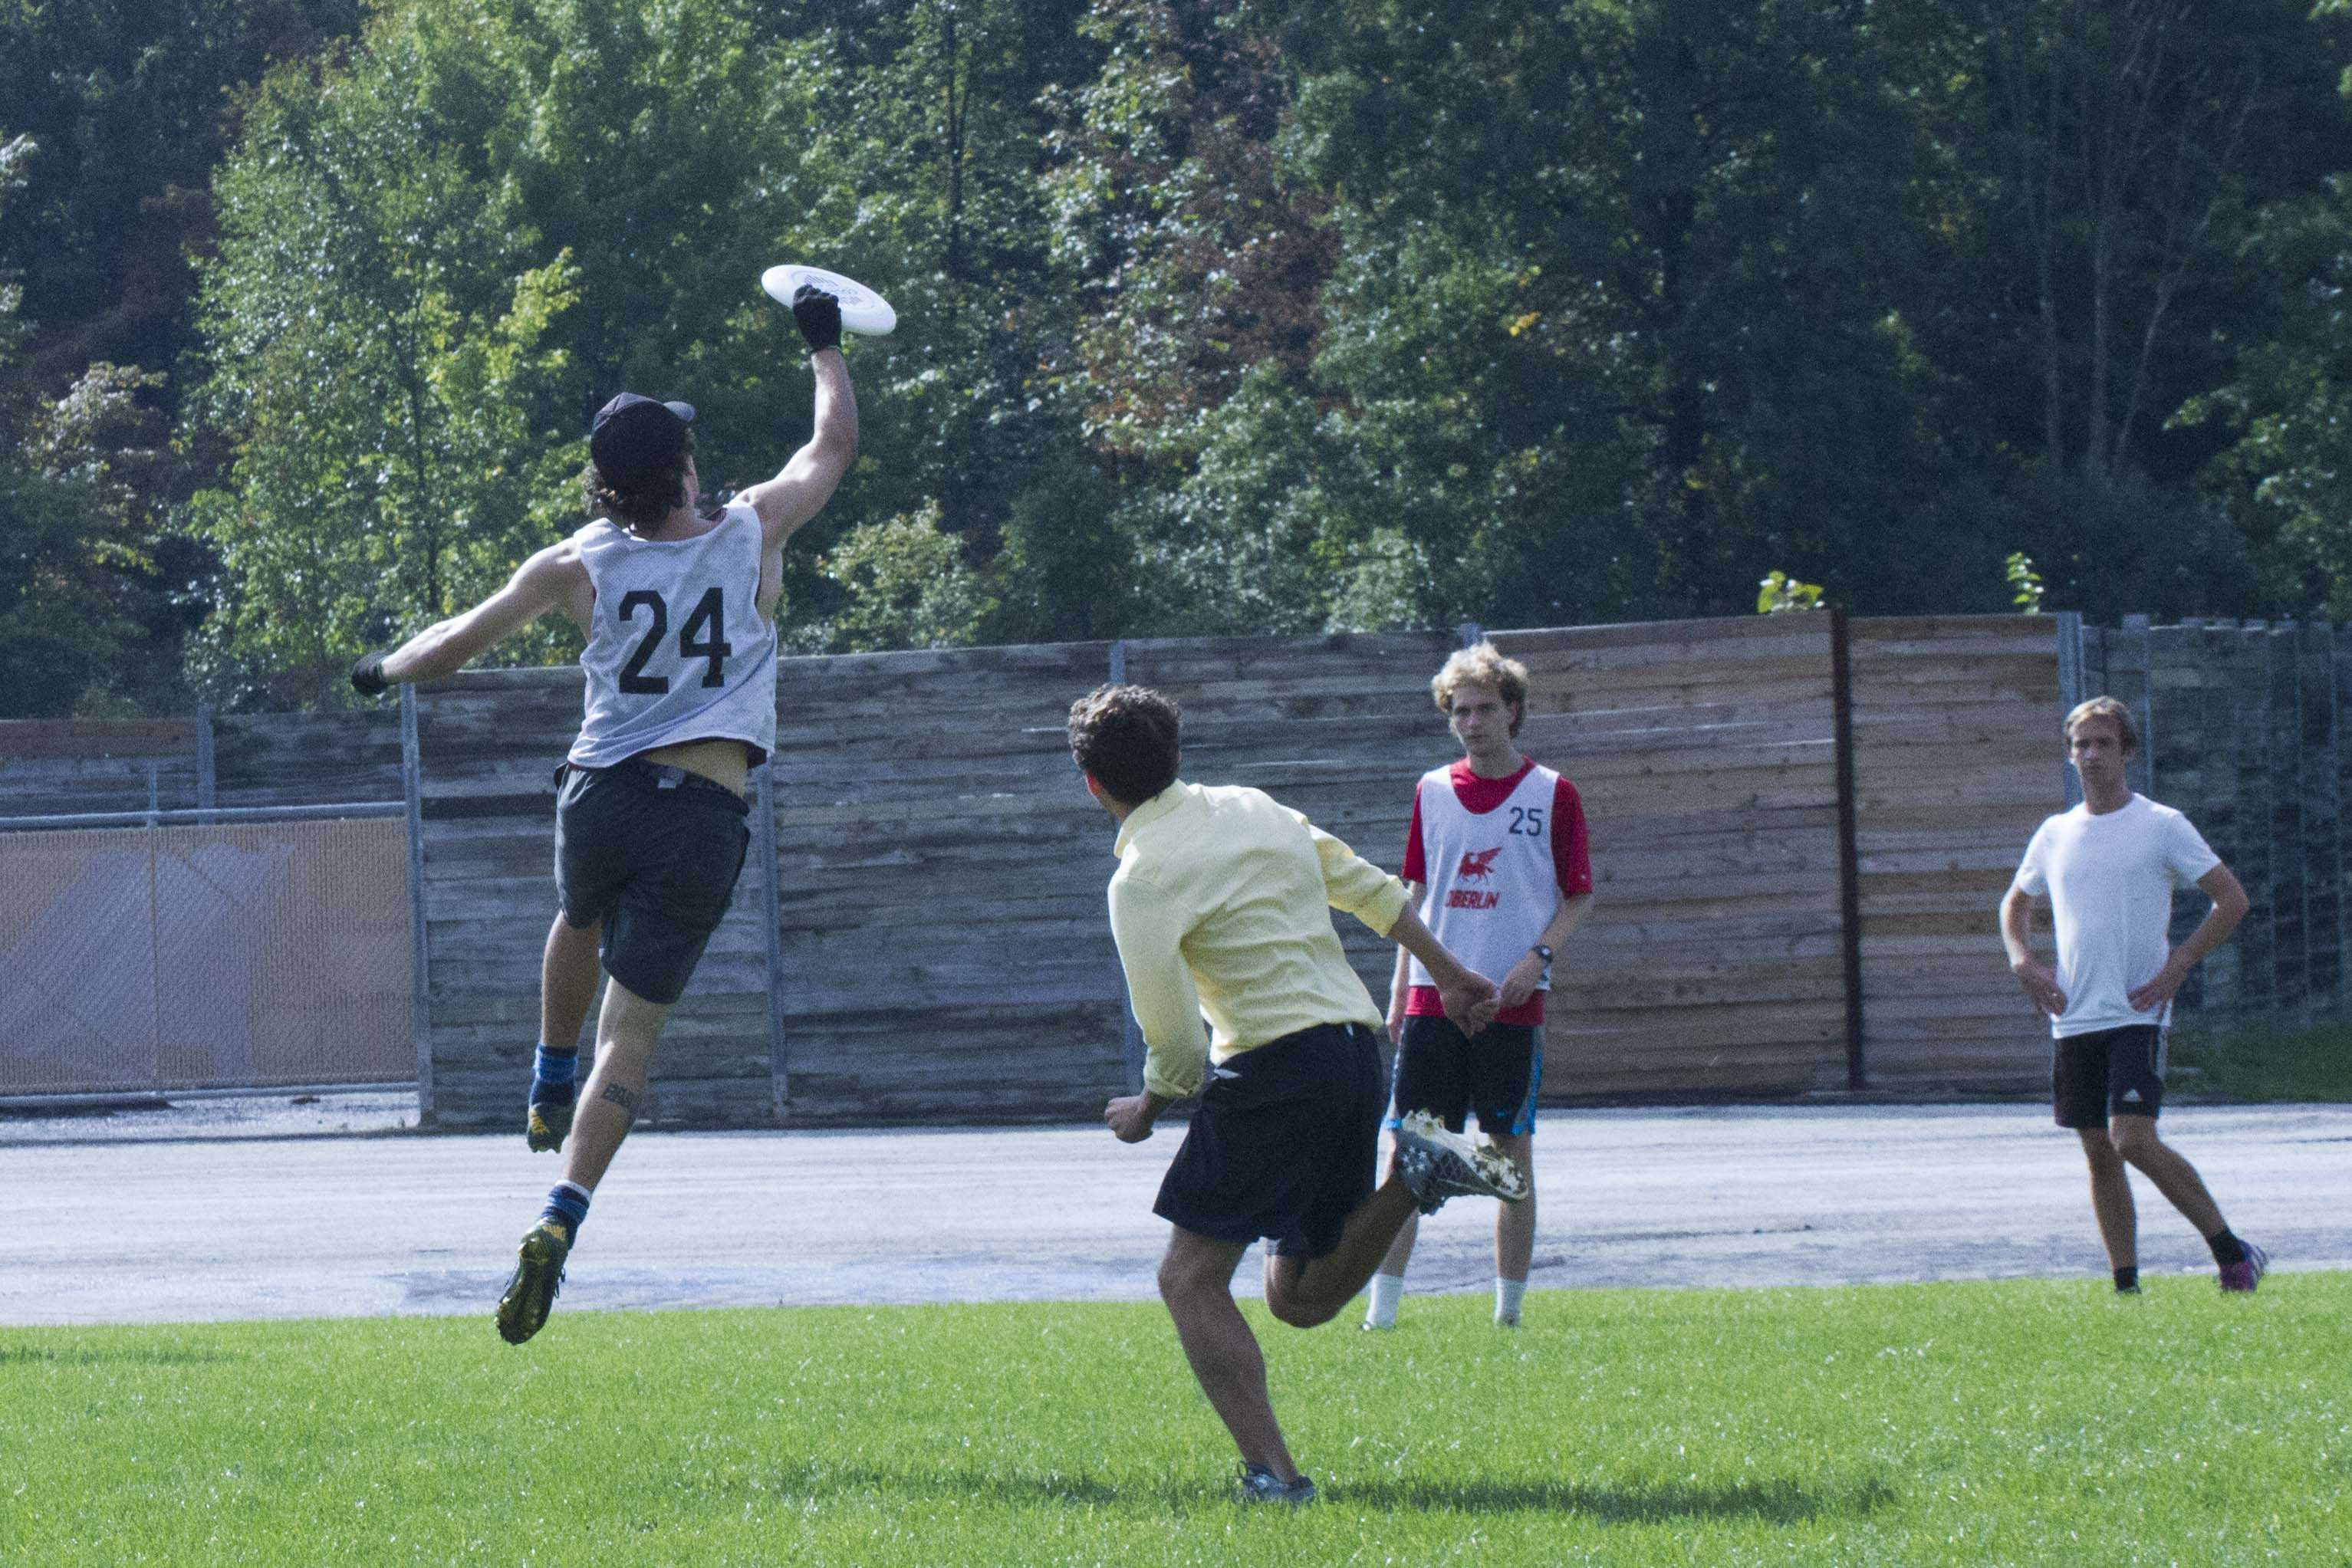 Flying horsecows captain Peter LaFreniere makes a leaping catch during the team's practice.